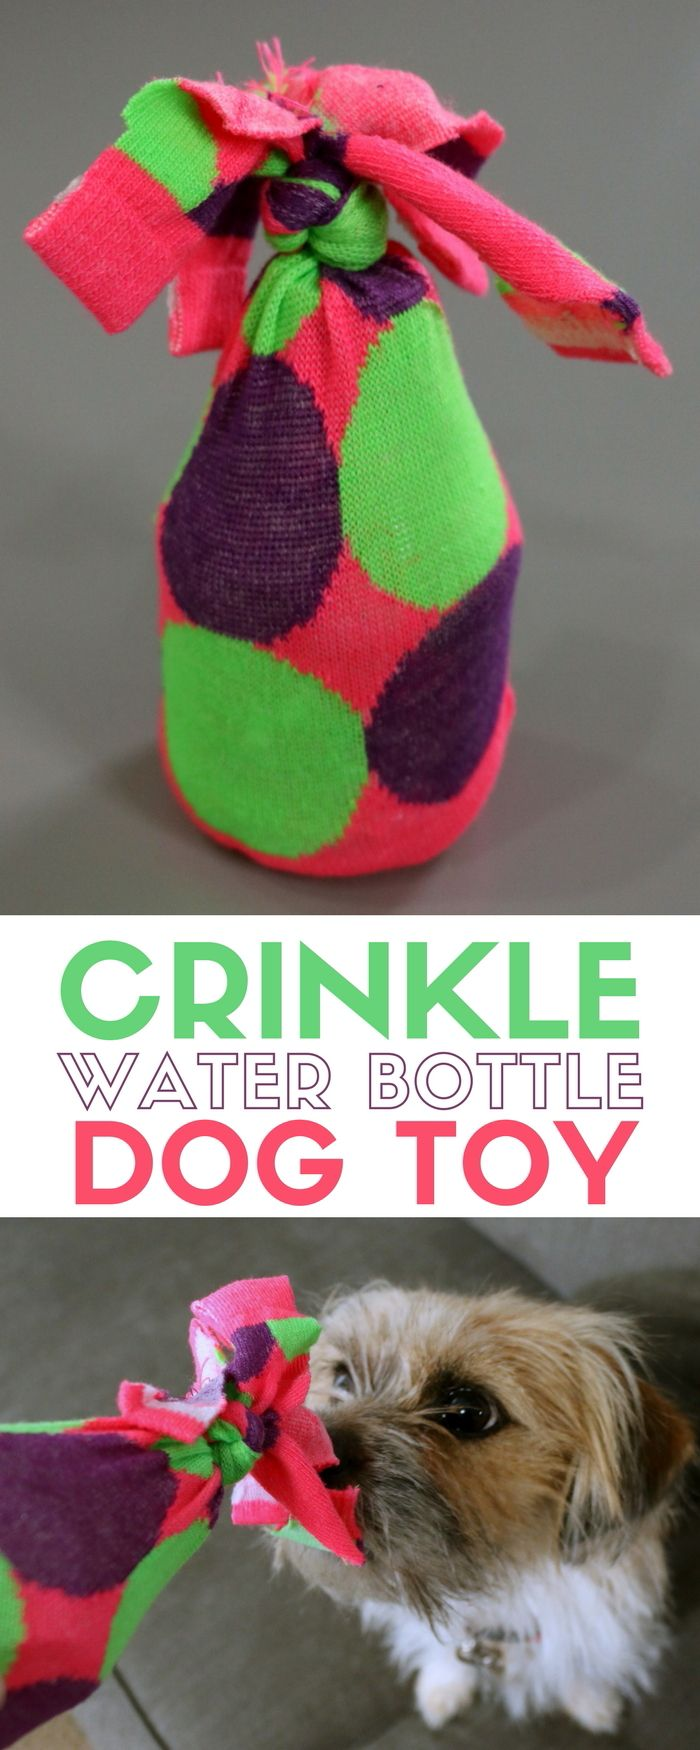 How To Make An Empty Water Bottle Dog Toy Cruncher Diy Dog Toys